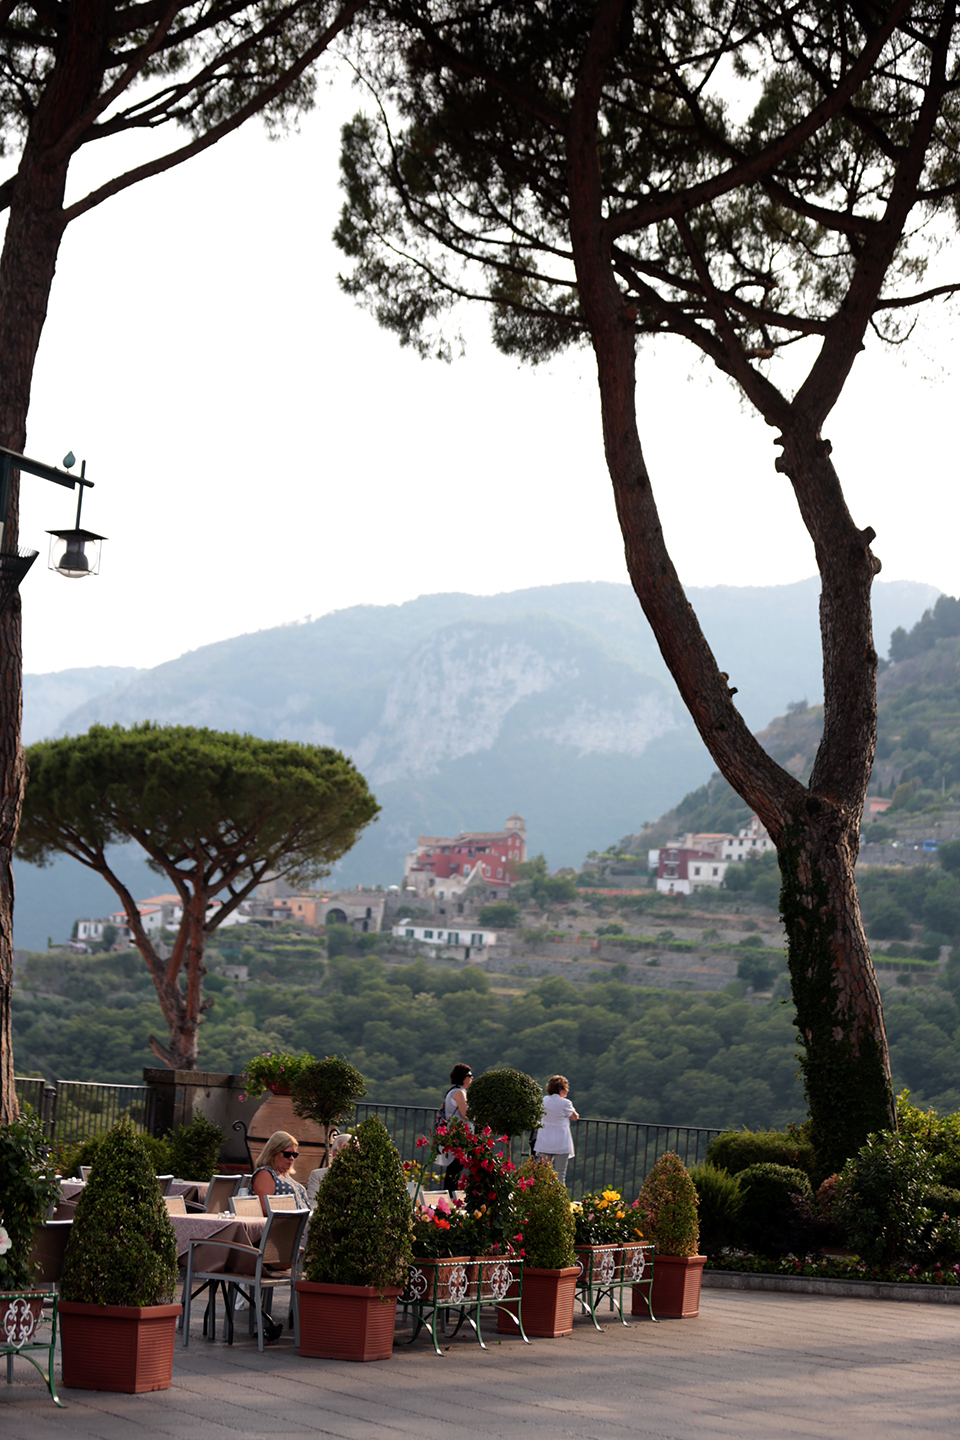 ravello-travel-blogger-italy-travel-diary-south-african-travel-blogger-amandacusto-014.jpg